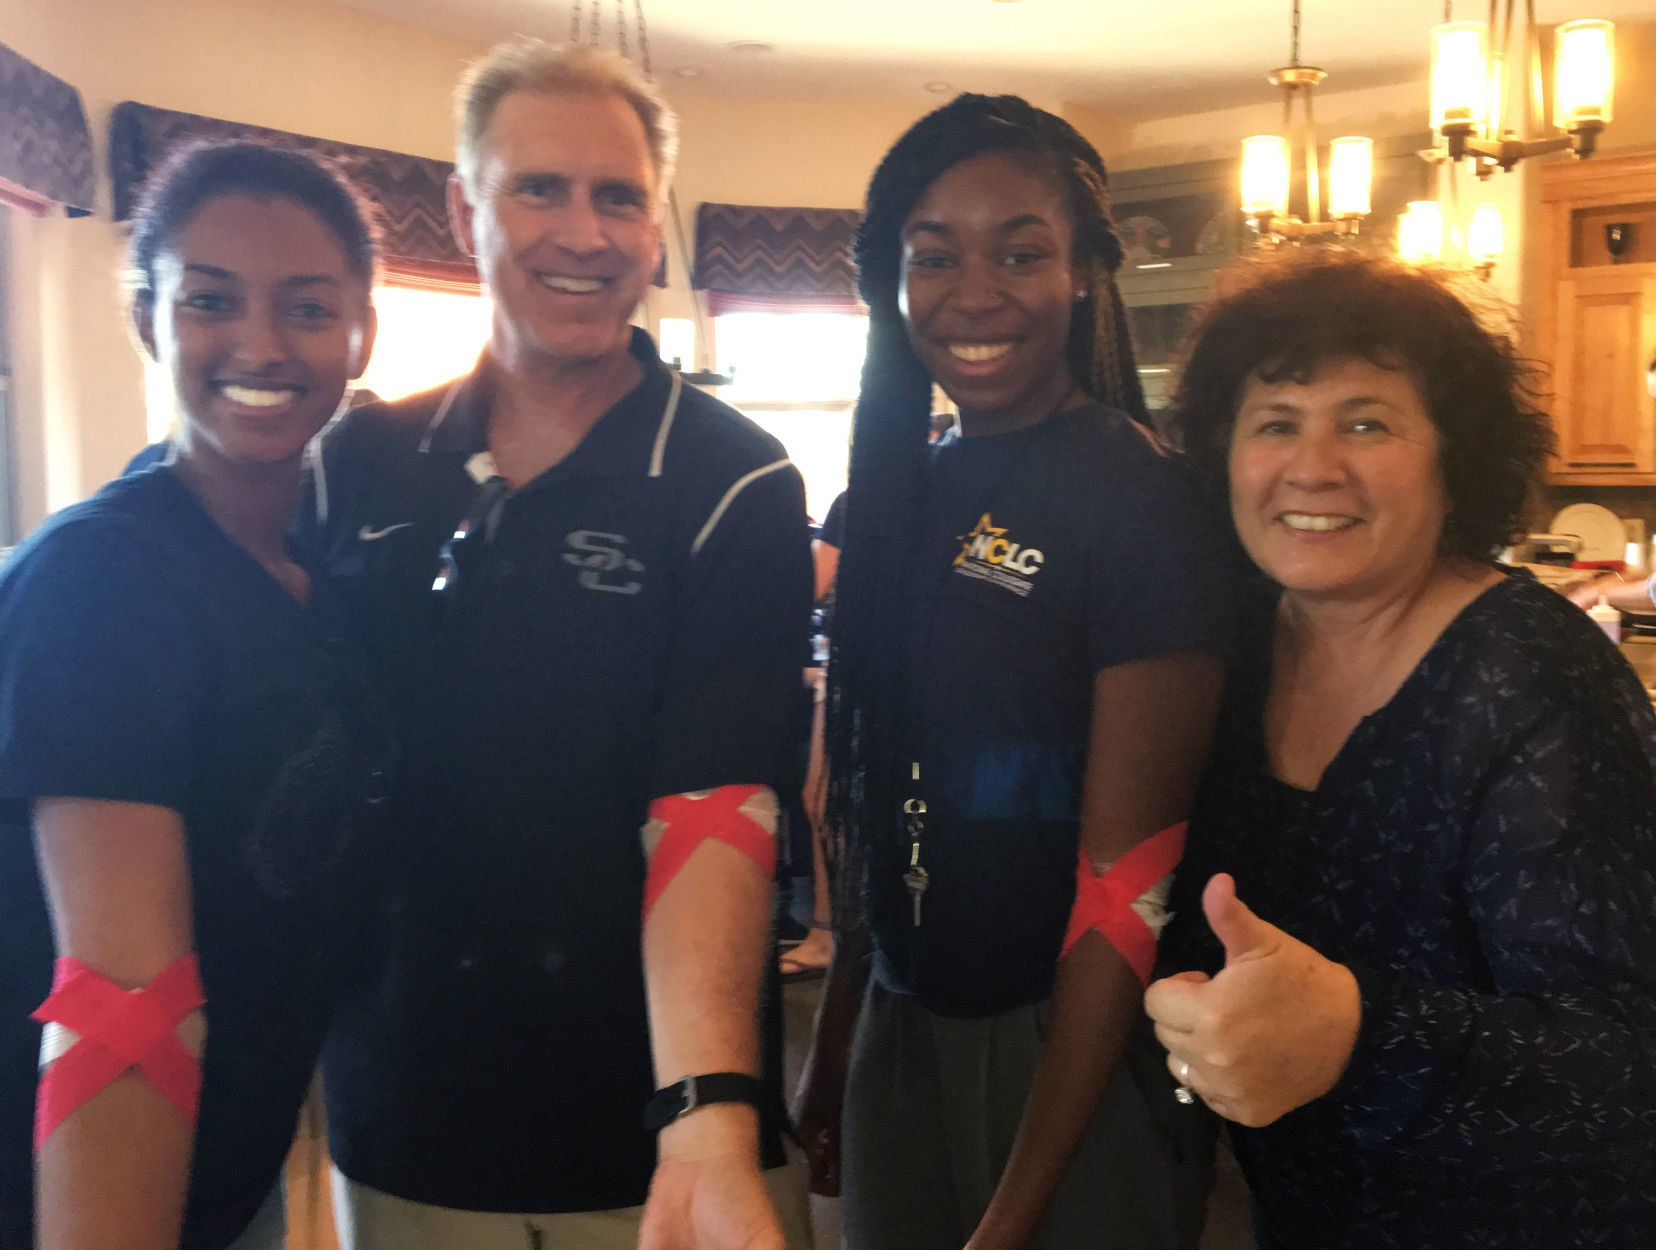 Lizzie Bell's family celebrating two milestones with Tucson blood drive | Tucson.com